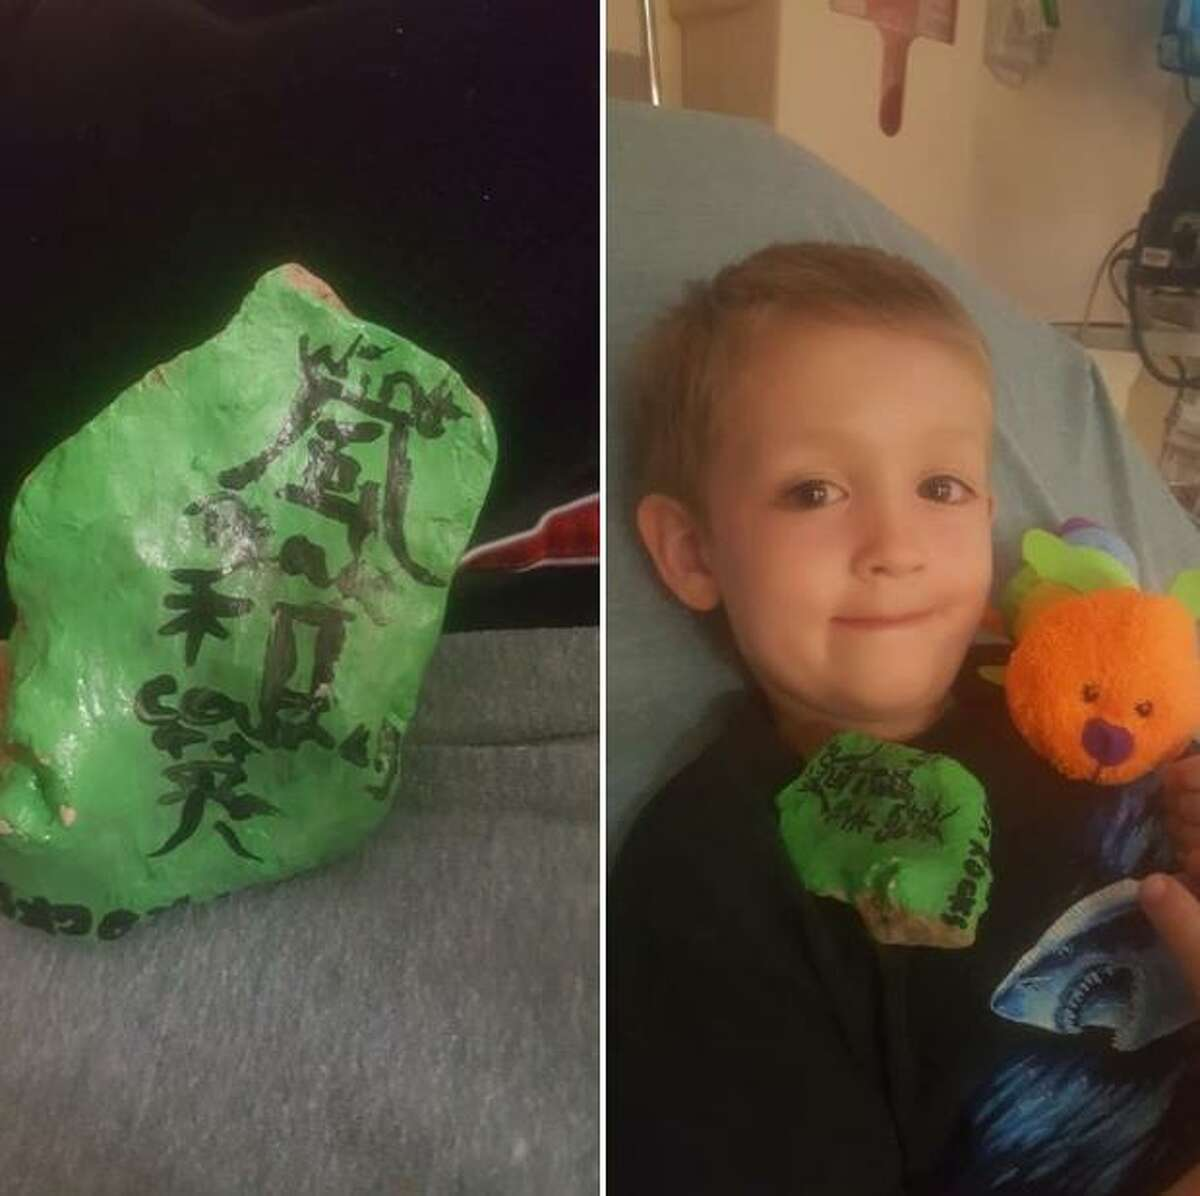 """The found rocks of San Antonio Rocks can come with their own colorful stories. For instance, Elizabeth Sterns' seven-year-old son Jackson holds a painted rock while in an emergency room. The rock featured Japanese symbols with English words that included """"courage,"""" which Jackson said he needed."""